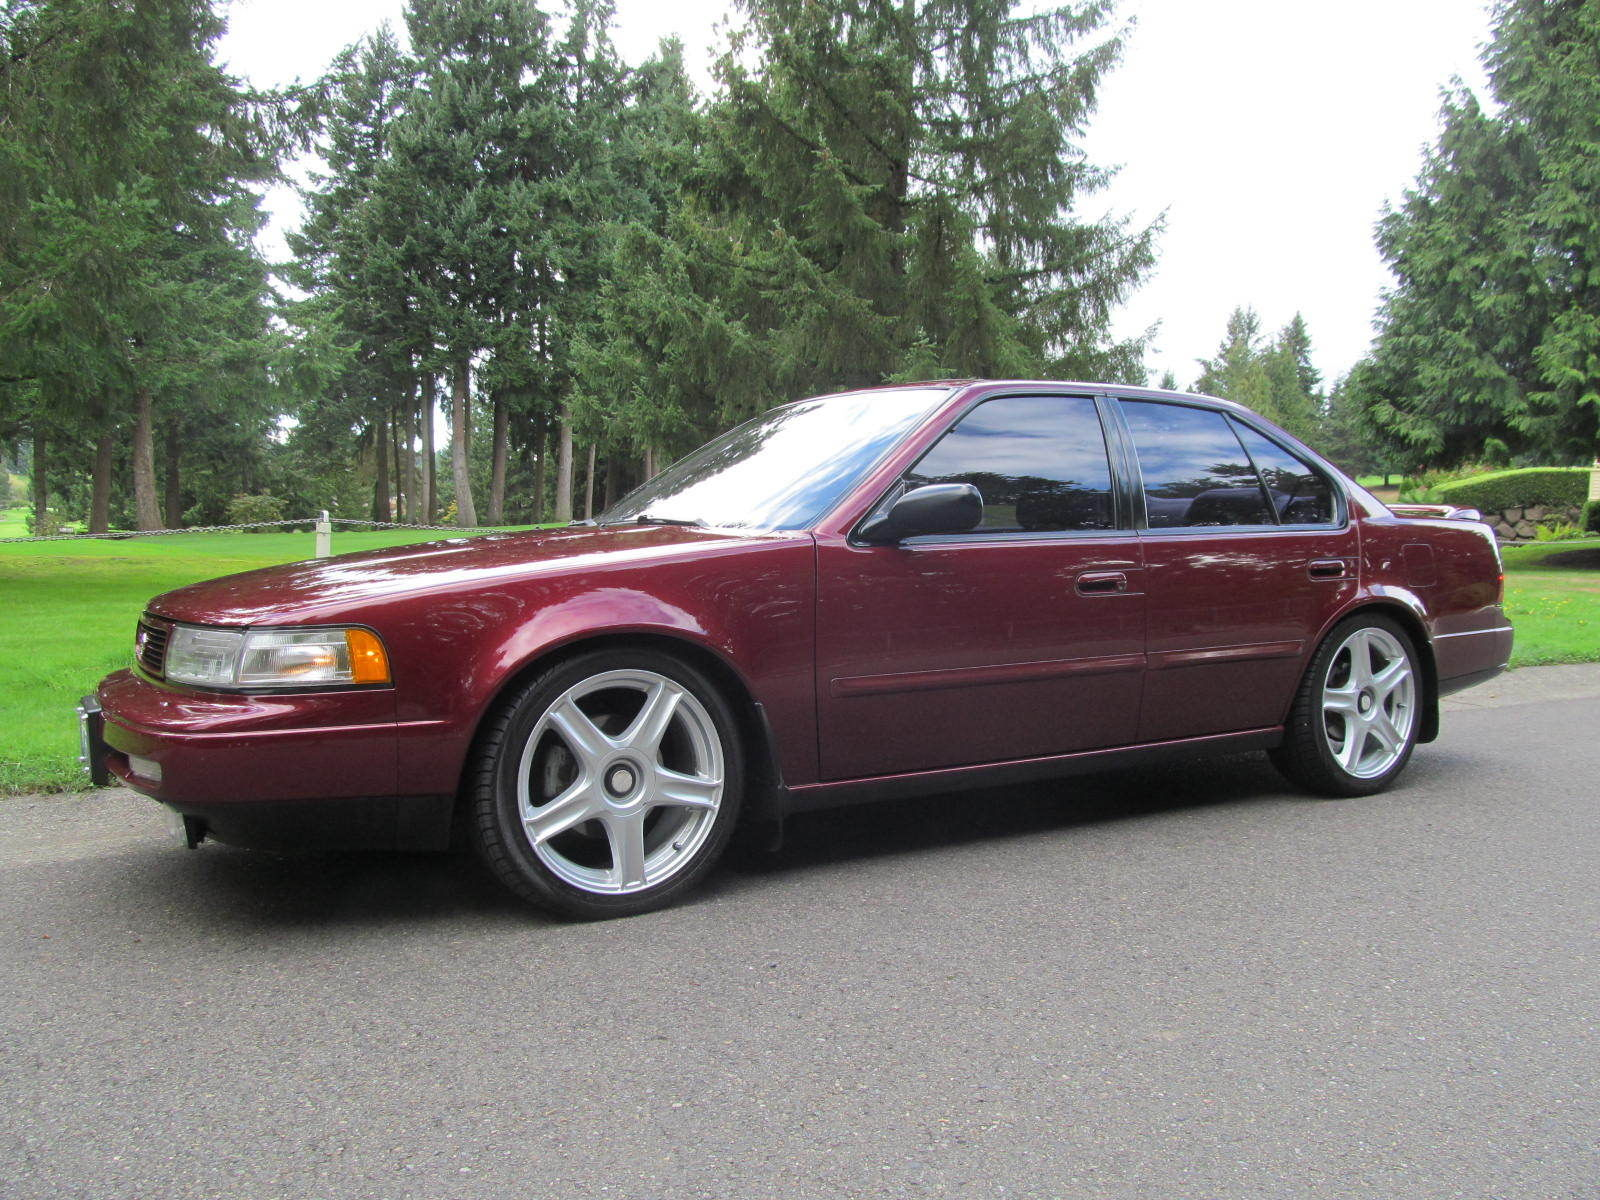 Classic Nissan Maxima for Sale on ClassicCars.com |Old Nissan Maxima